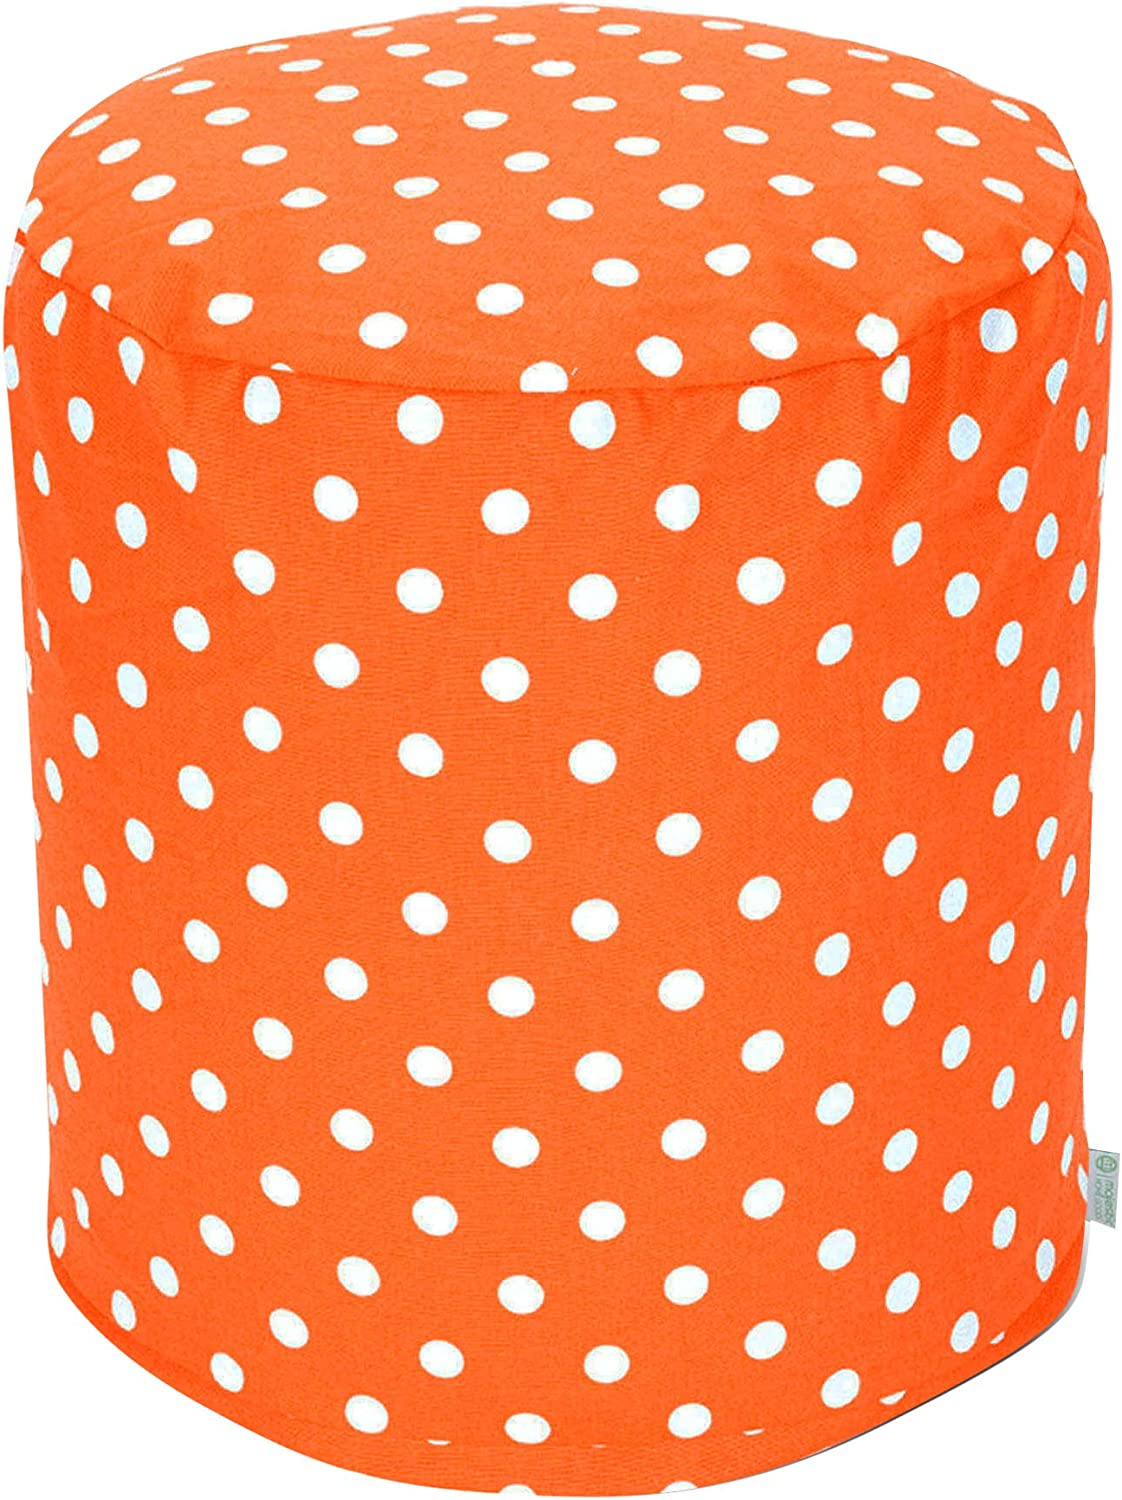 Majestic Home Goods Tangerine Small Polka Dot Small Pouf